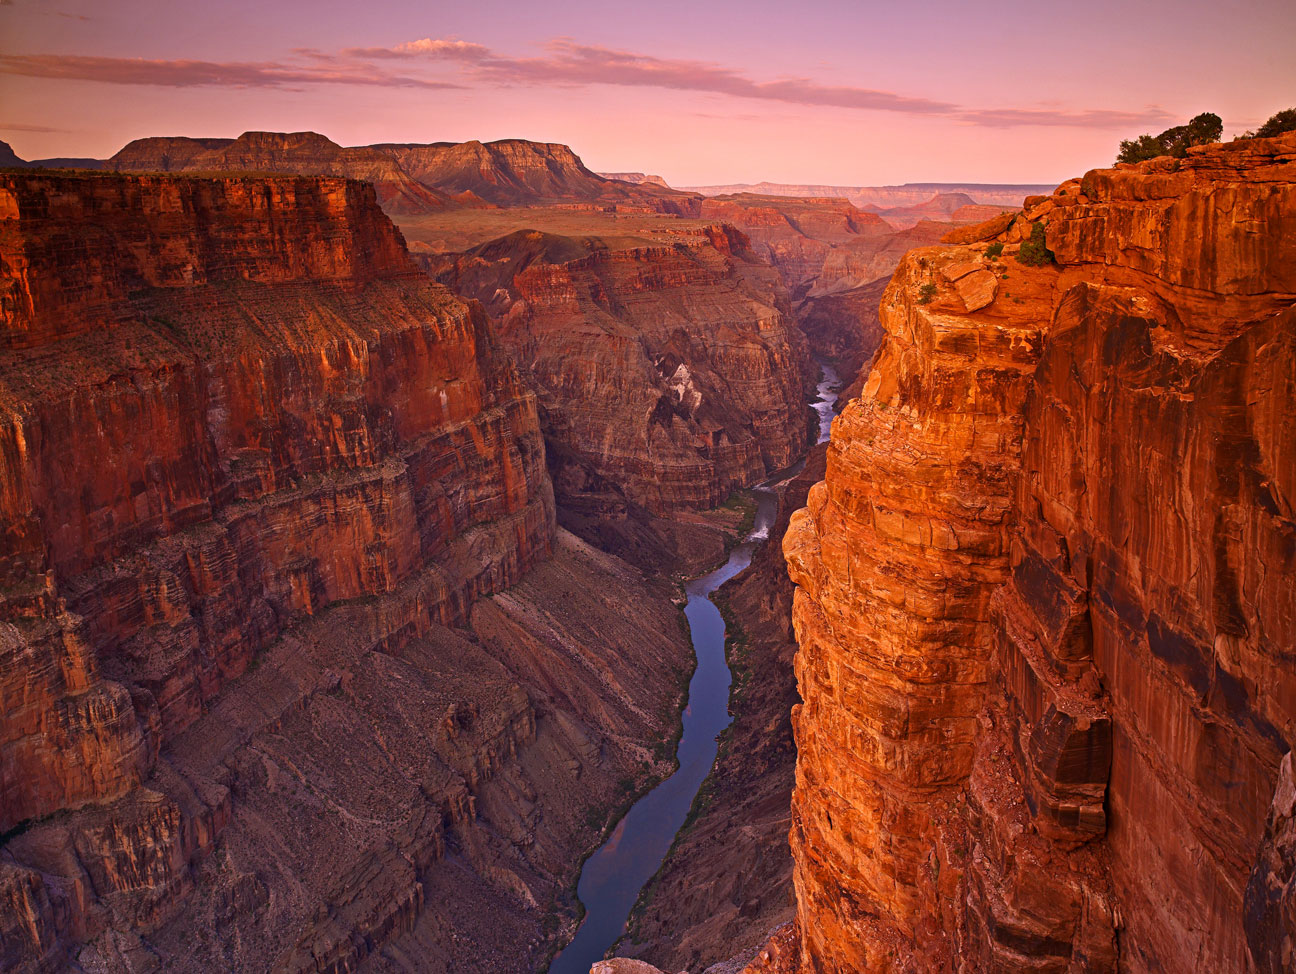 DAWN ON THE CANYON